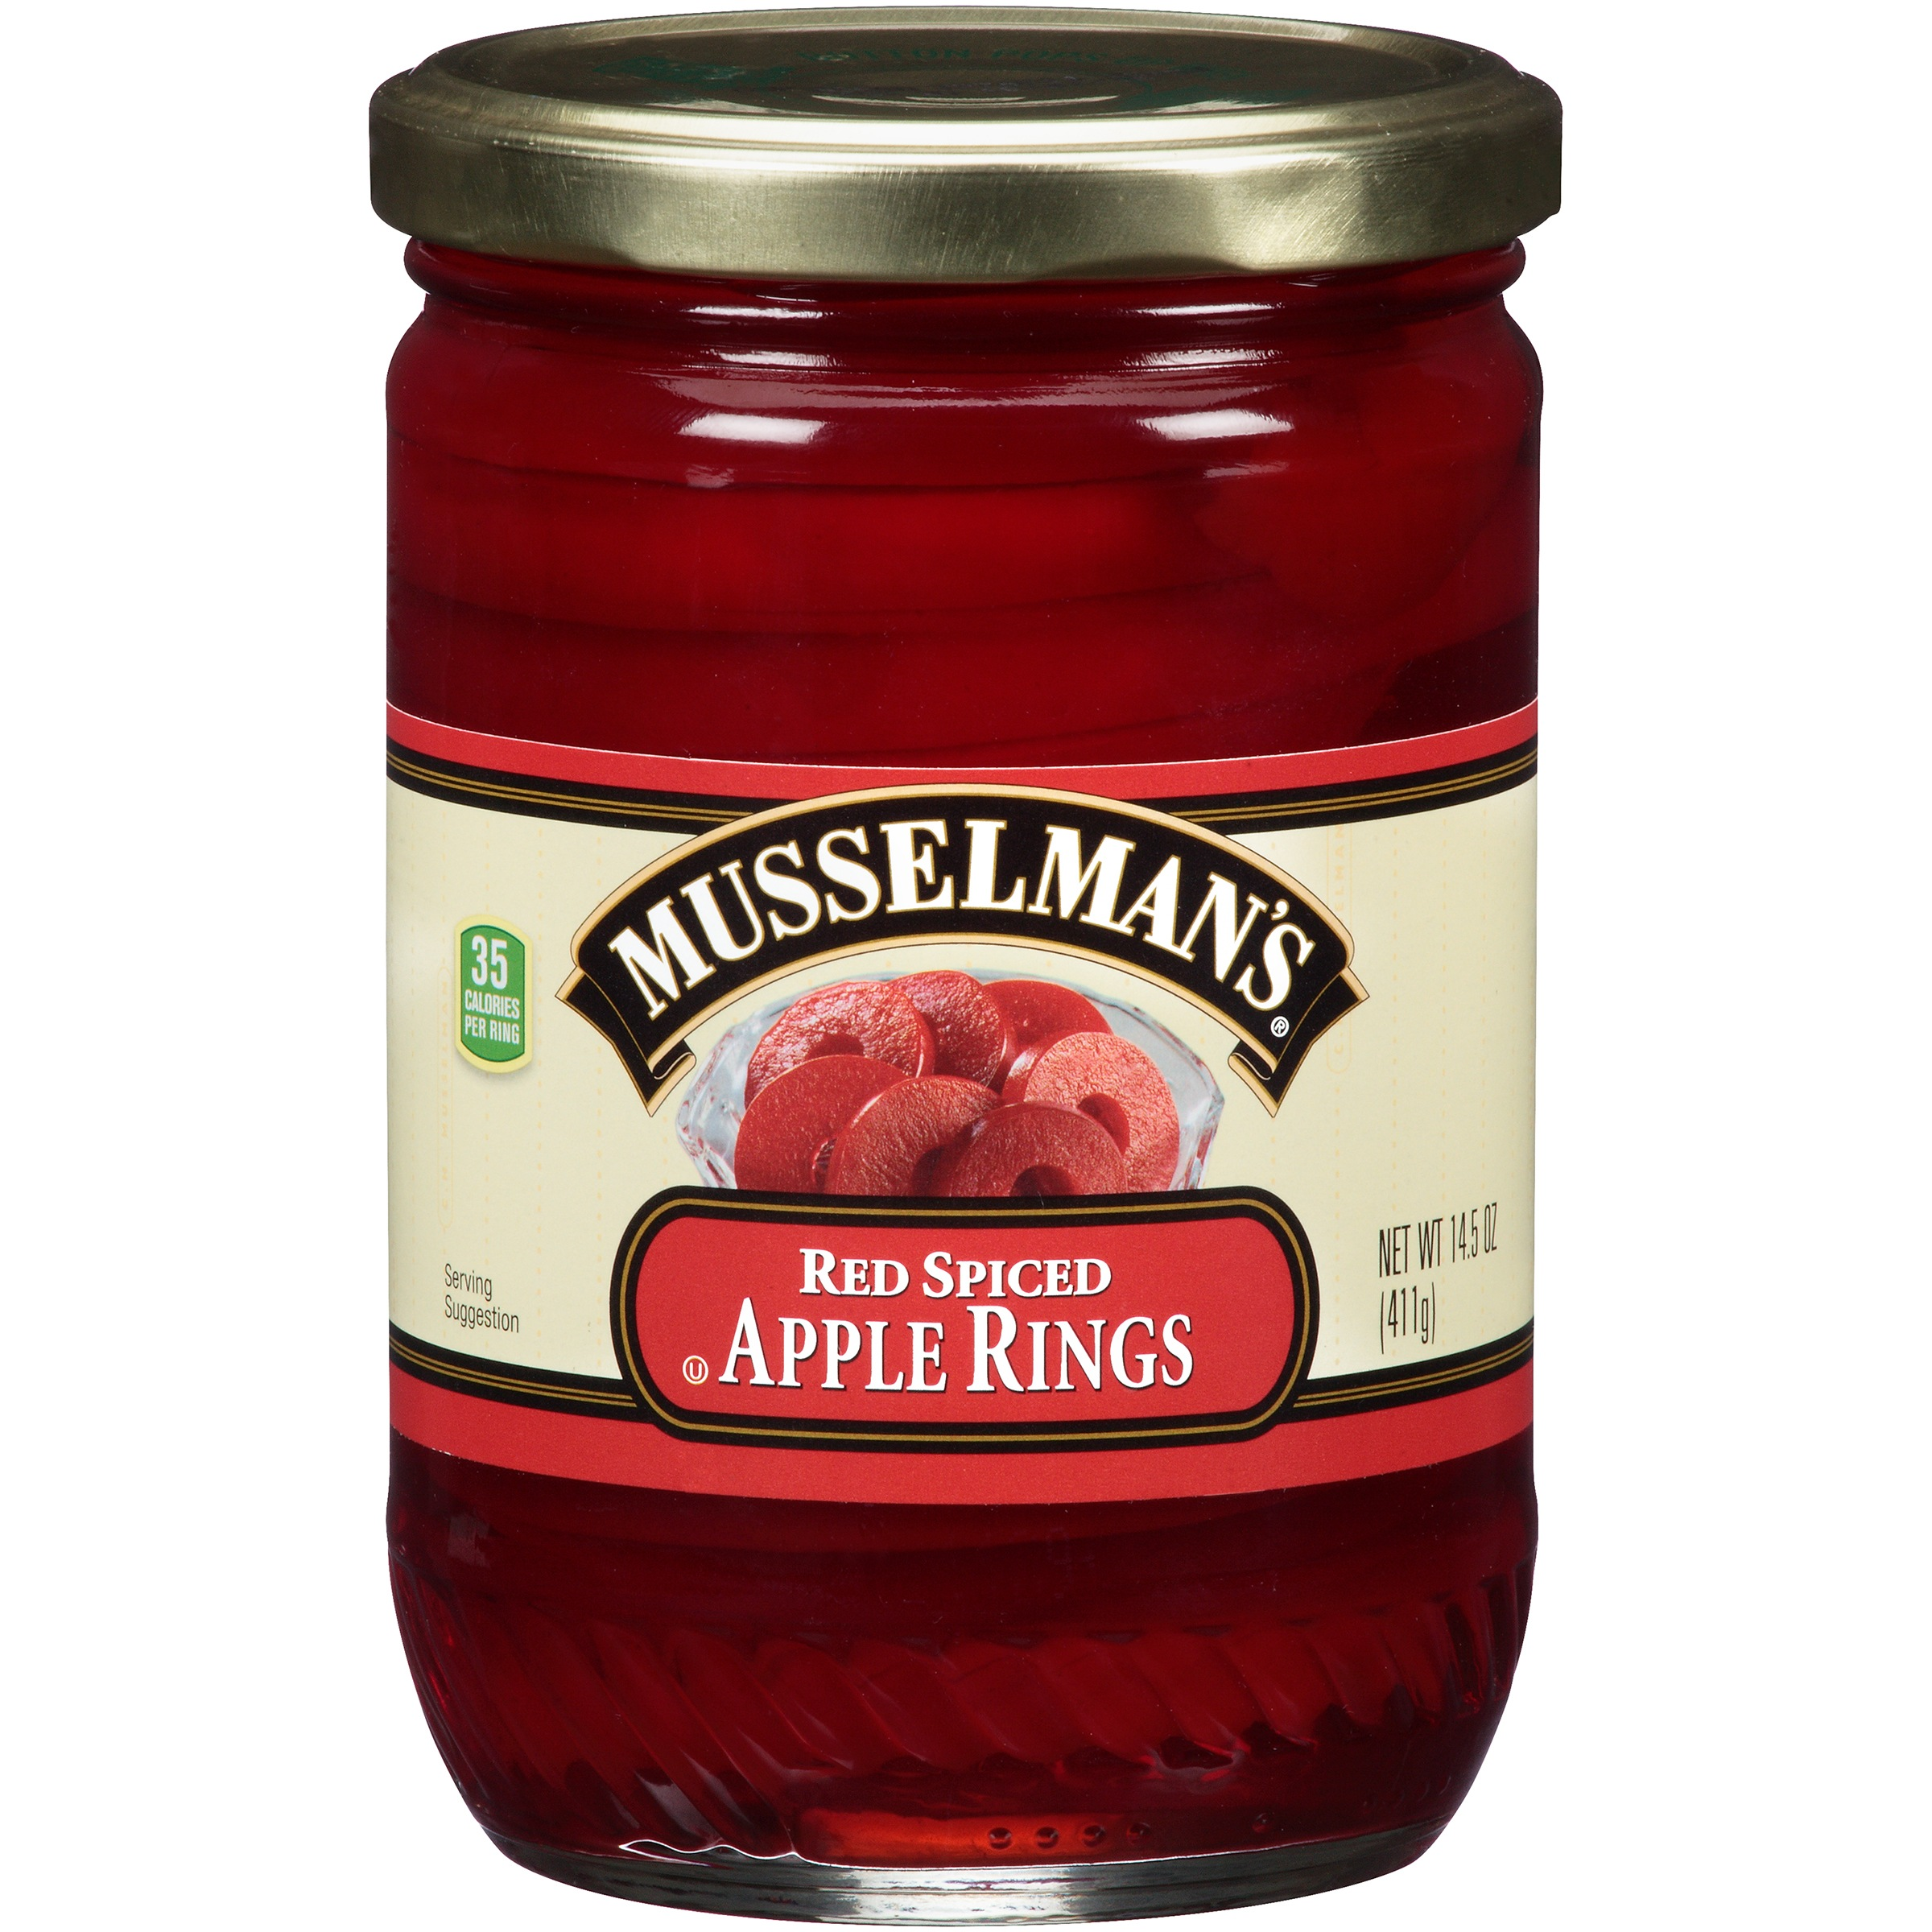 Musselman's Red Spiced Apple Rings 14.5 oz. Jar by Knouse Foods